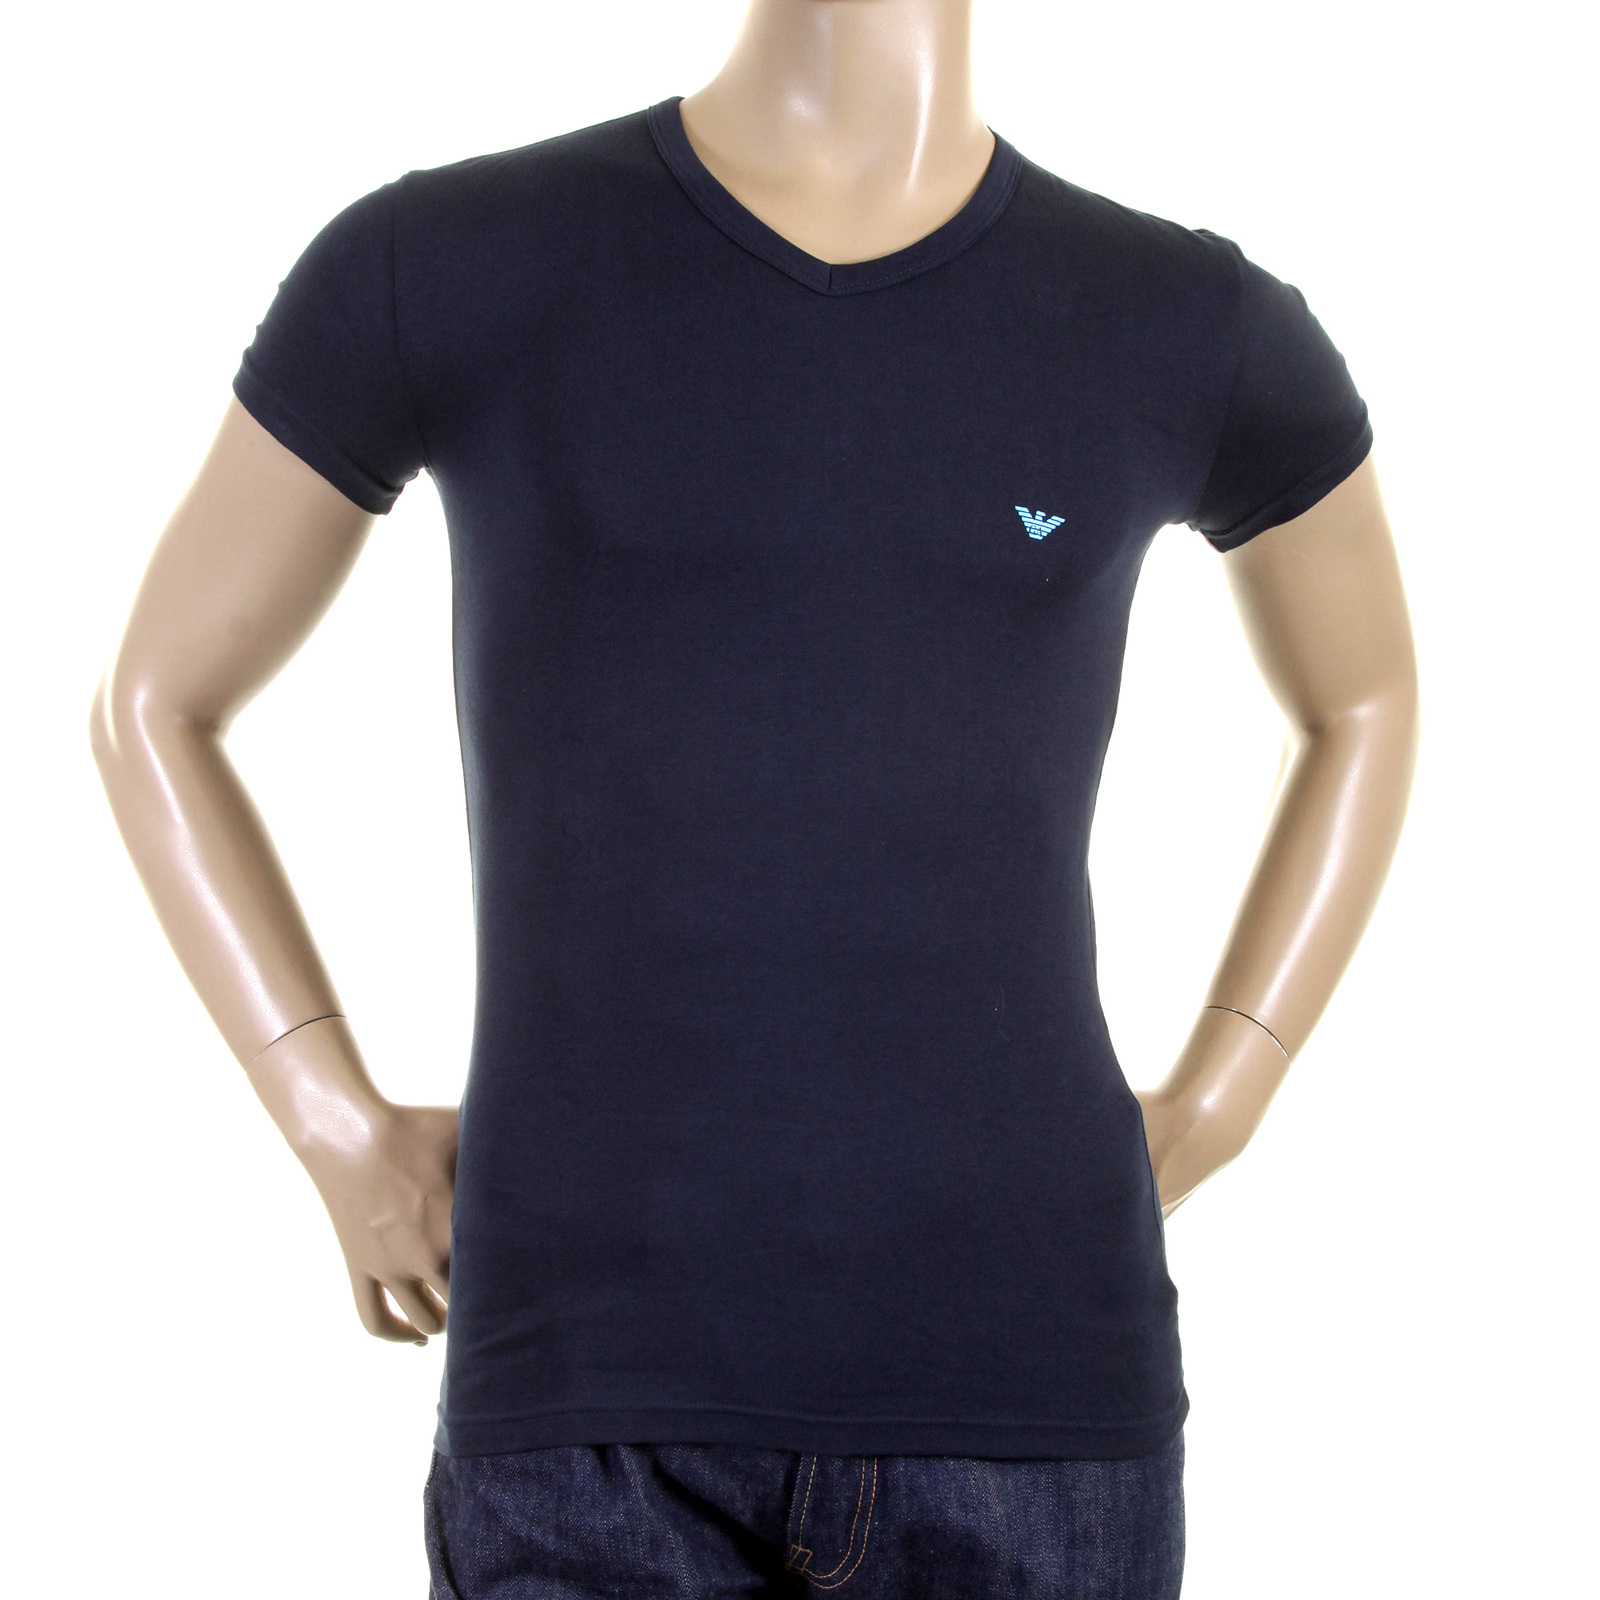 emporio armani t shirts navy blue v neck logo t shirt. Black Bedroom Furniture Sets. Home Design Ideas